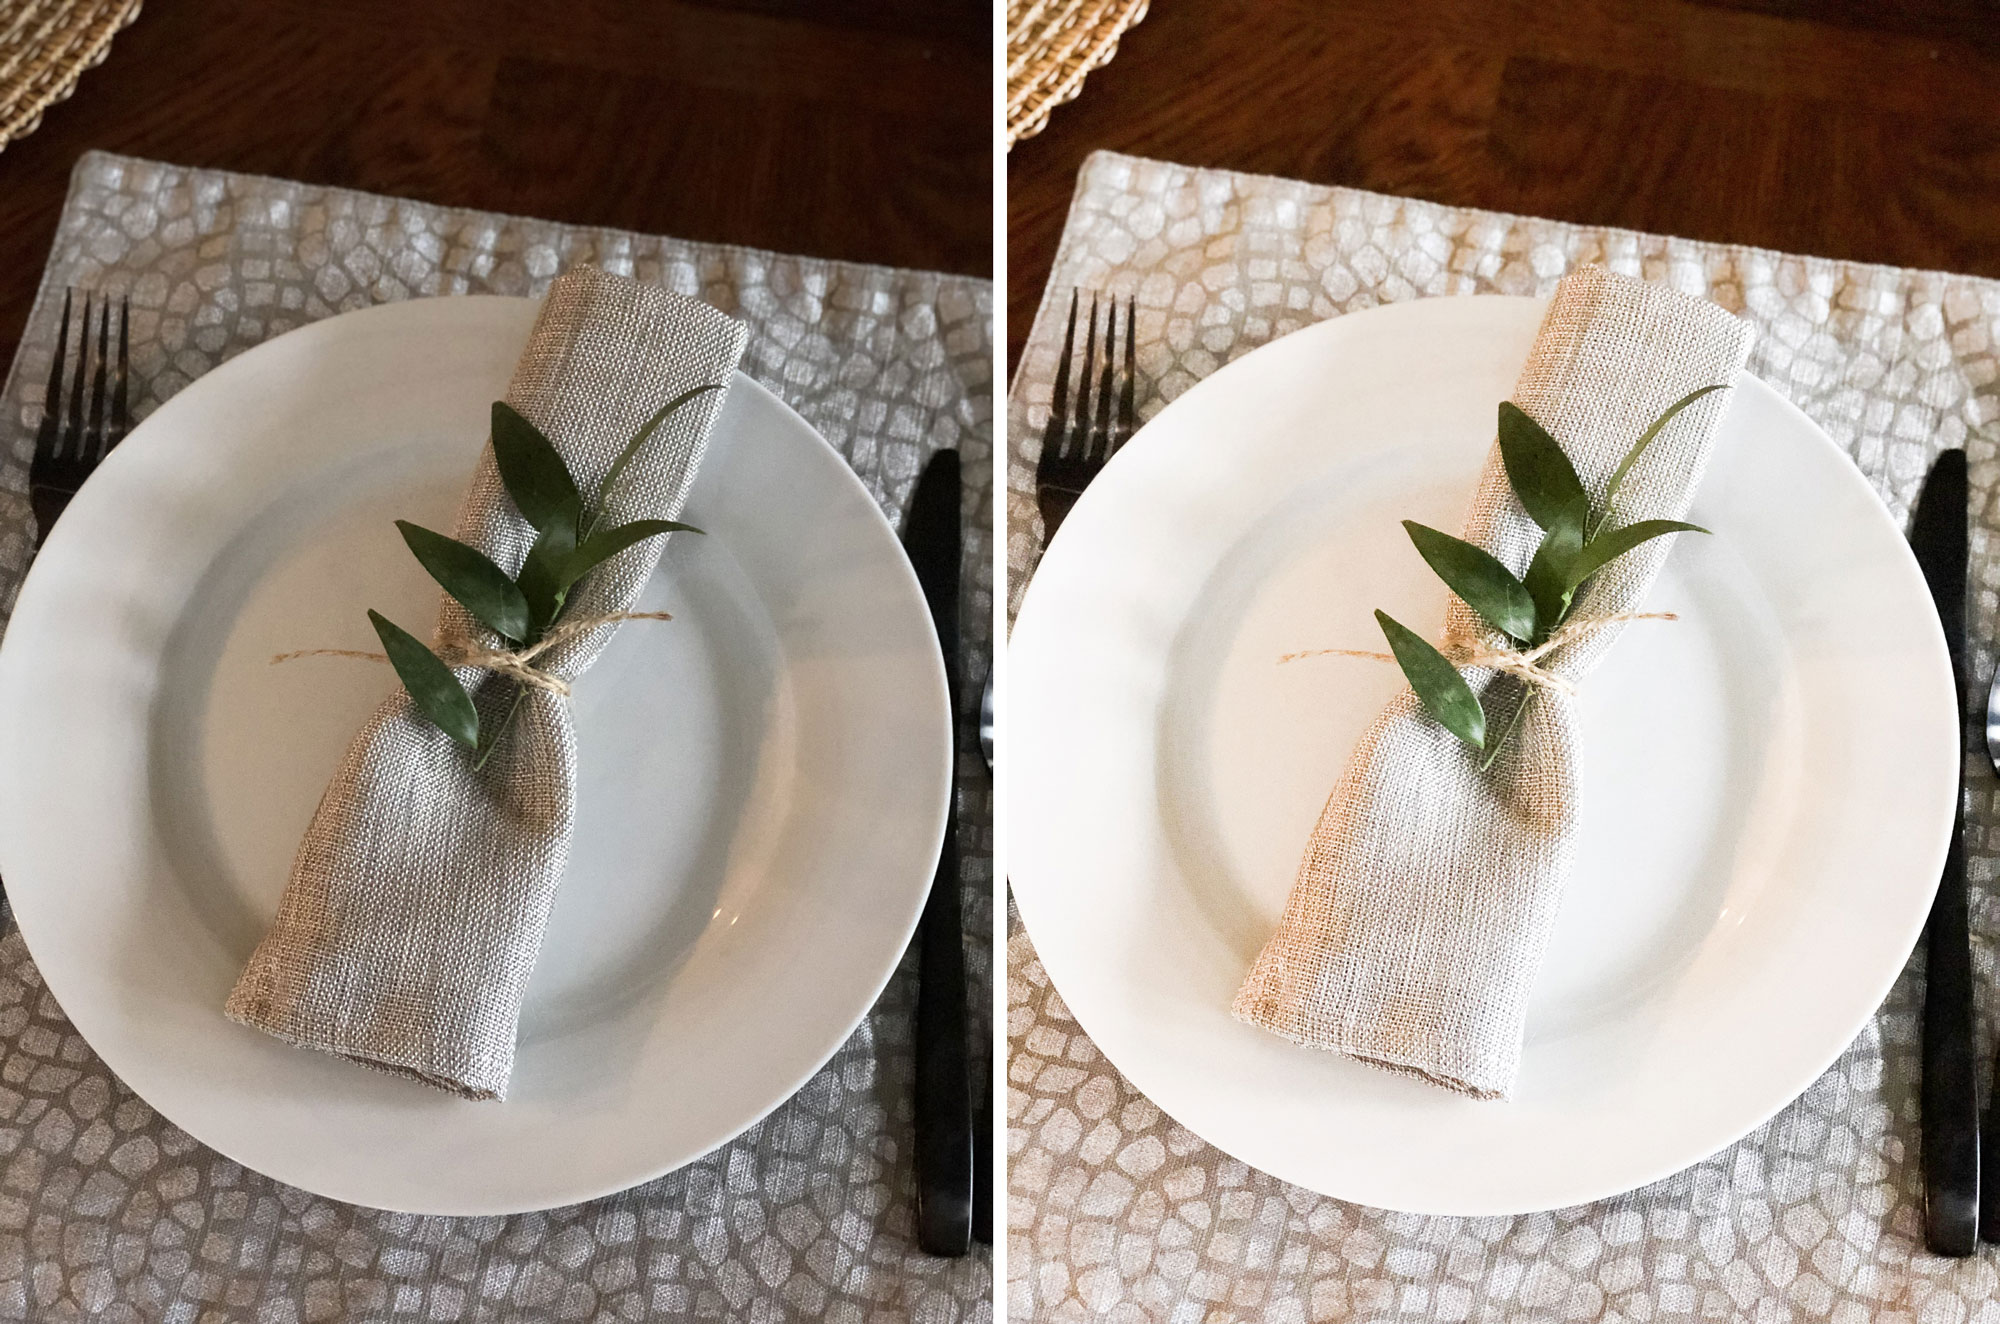 table-setting-before-and-after.jpg